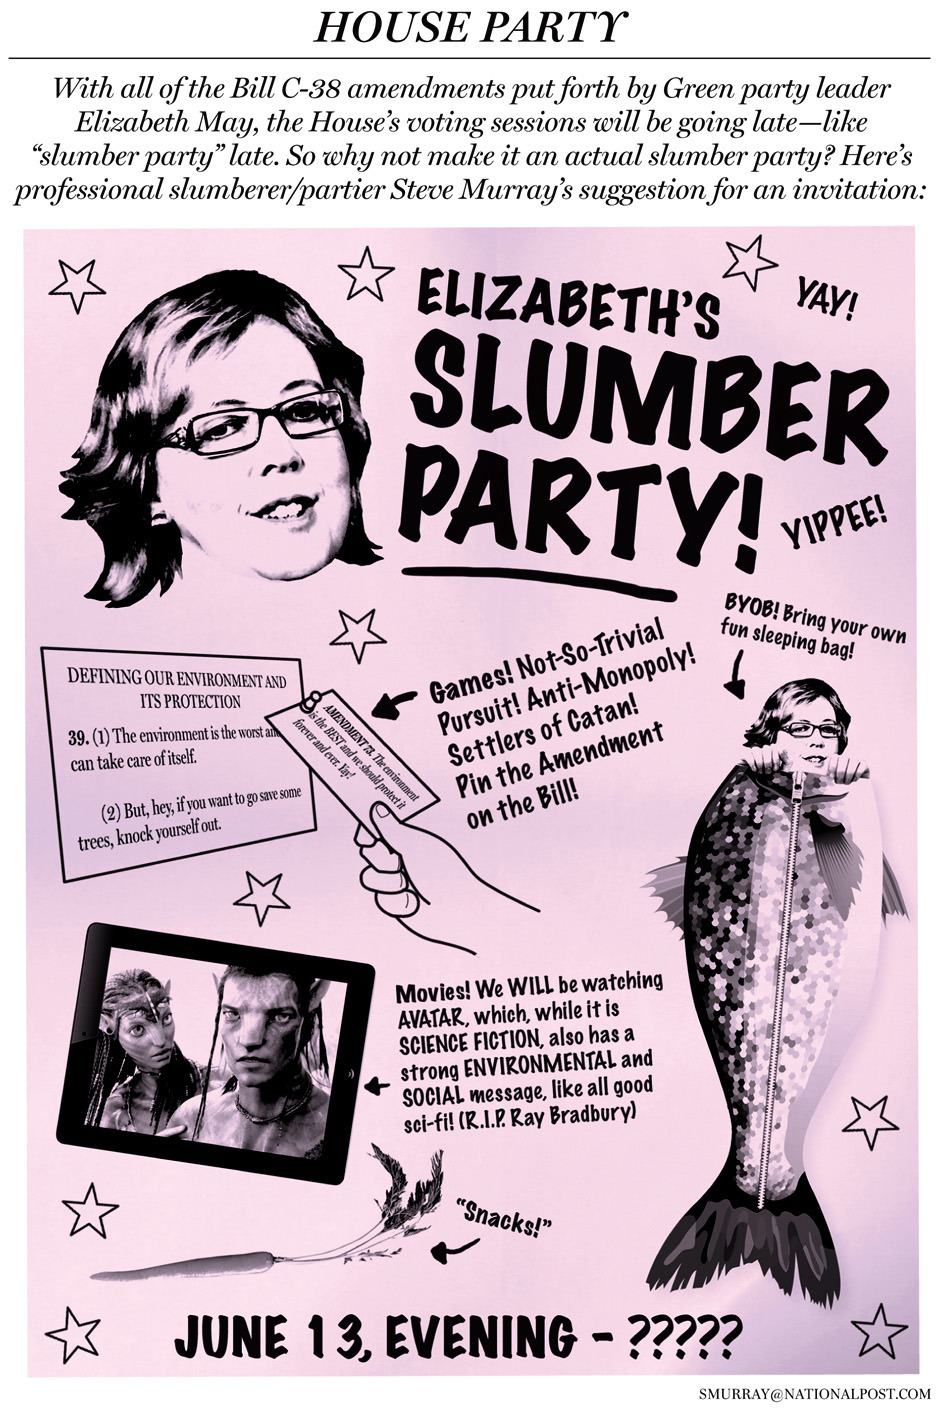 Sleepover on the Hill: Your guide to Elizabeth May's omnibus bill slumber partyWith all the Bill C-38 amendments, the House's voting sessions will be going late — like 'slumber party' late. So why not make it an actual slumber party?